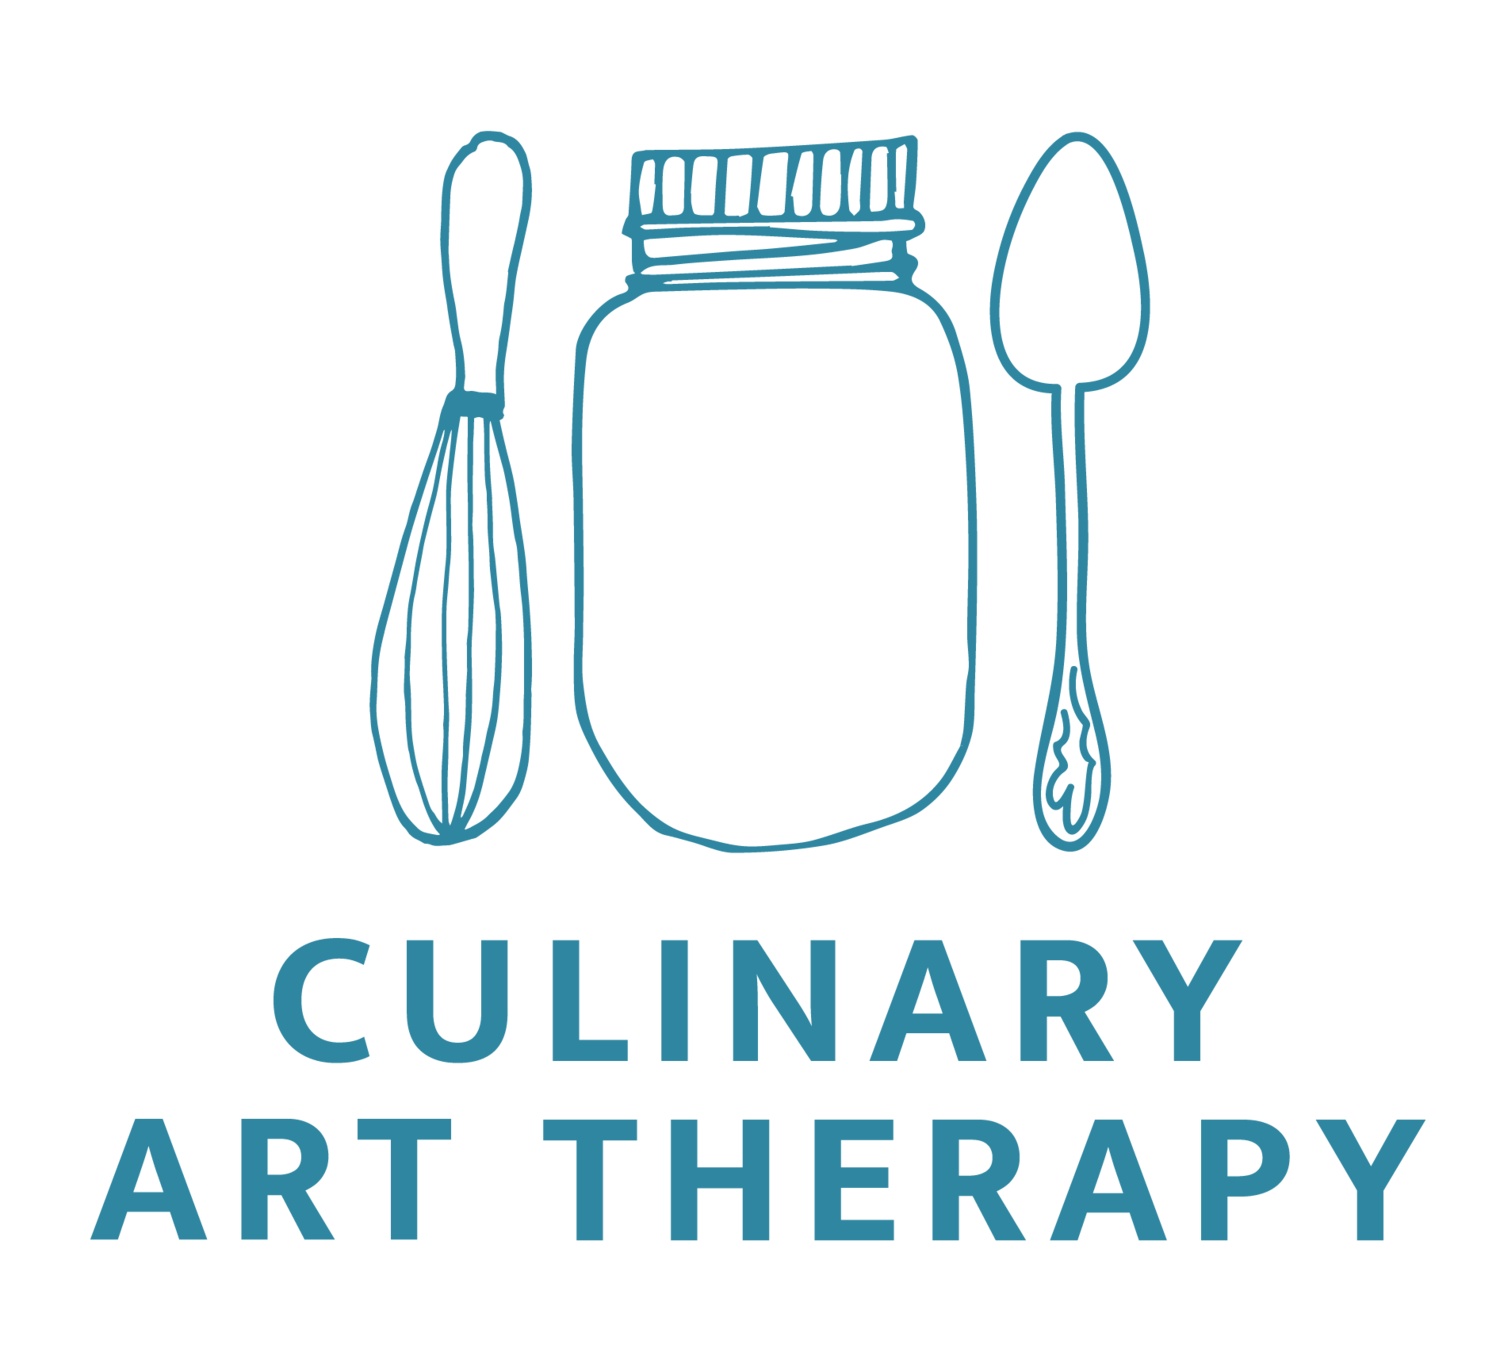 Culinary Art Therapy